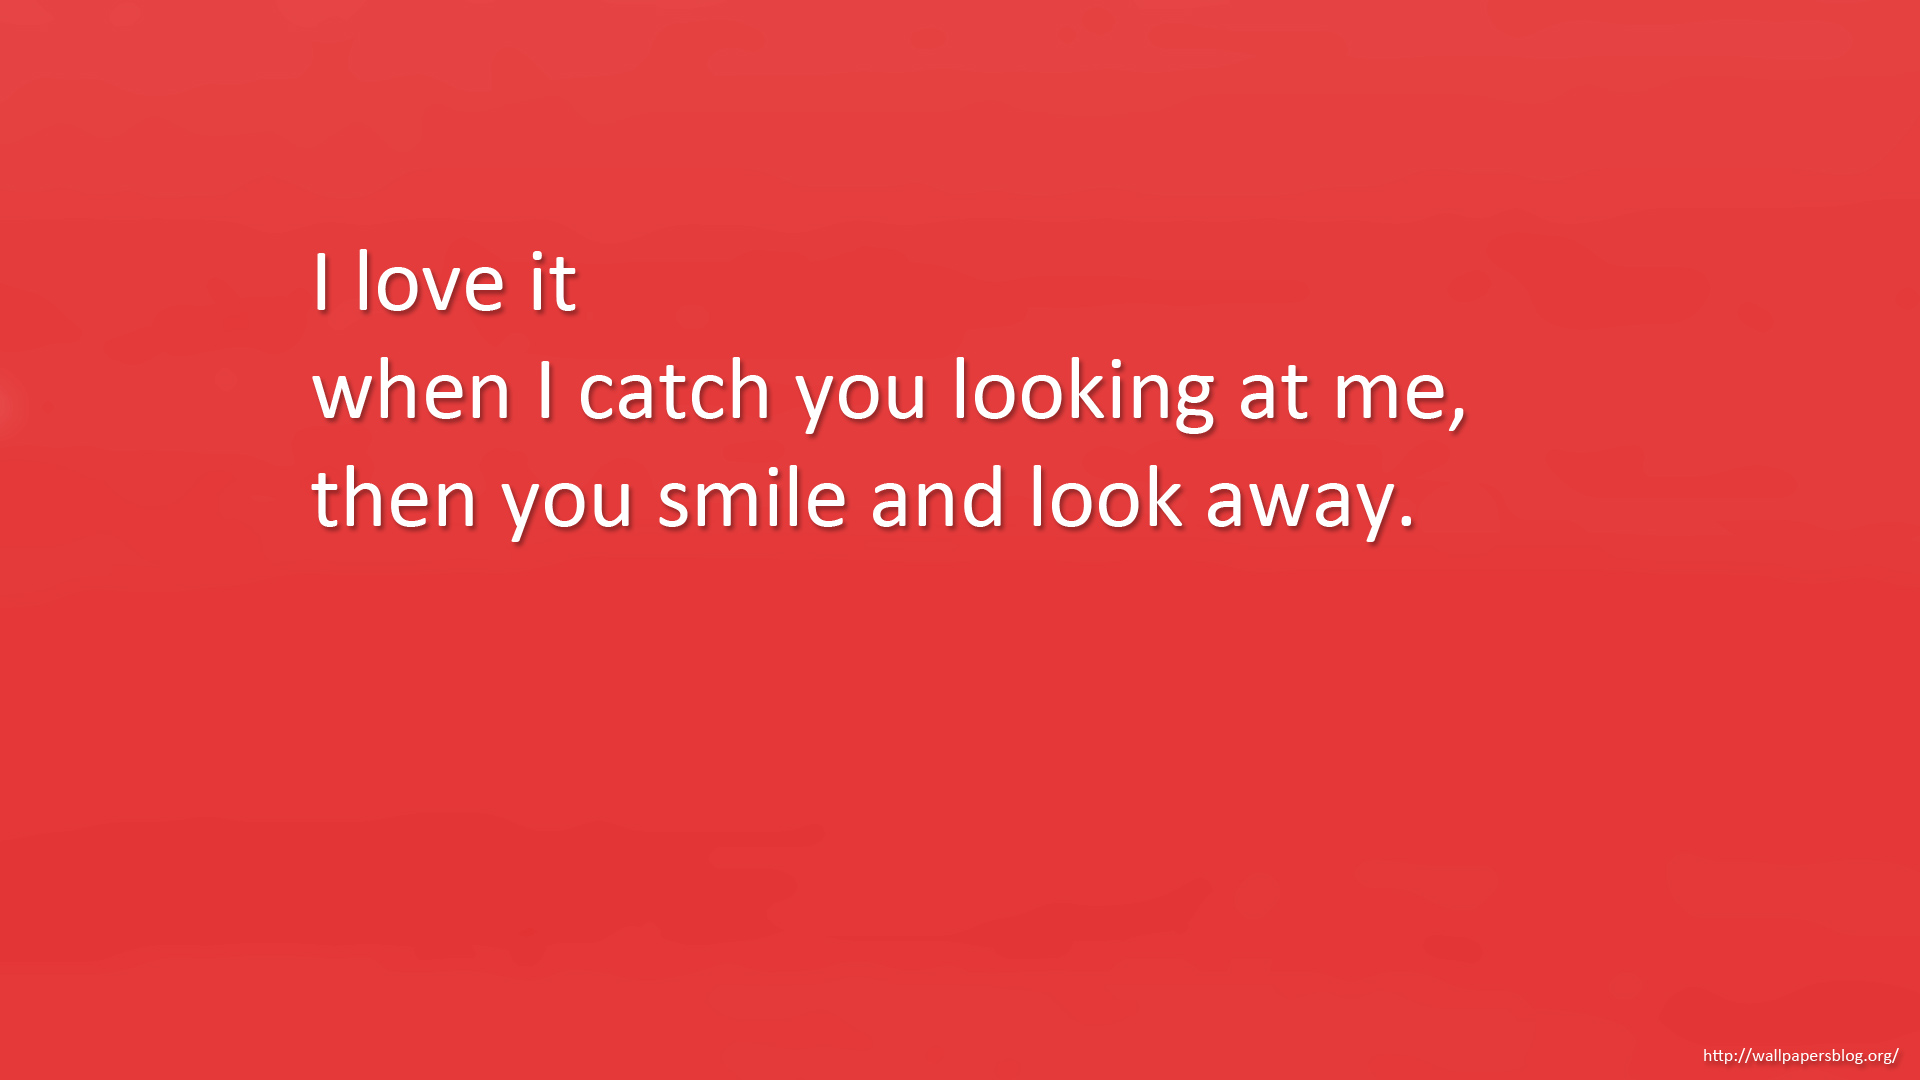 full hd quote wallpaper 1080p I love it when I catch you looking at me 1920x1080